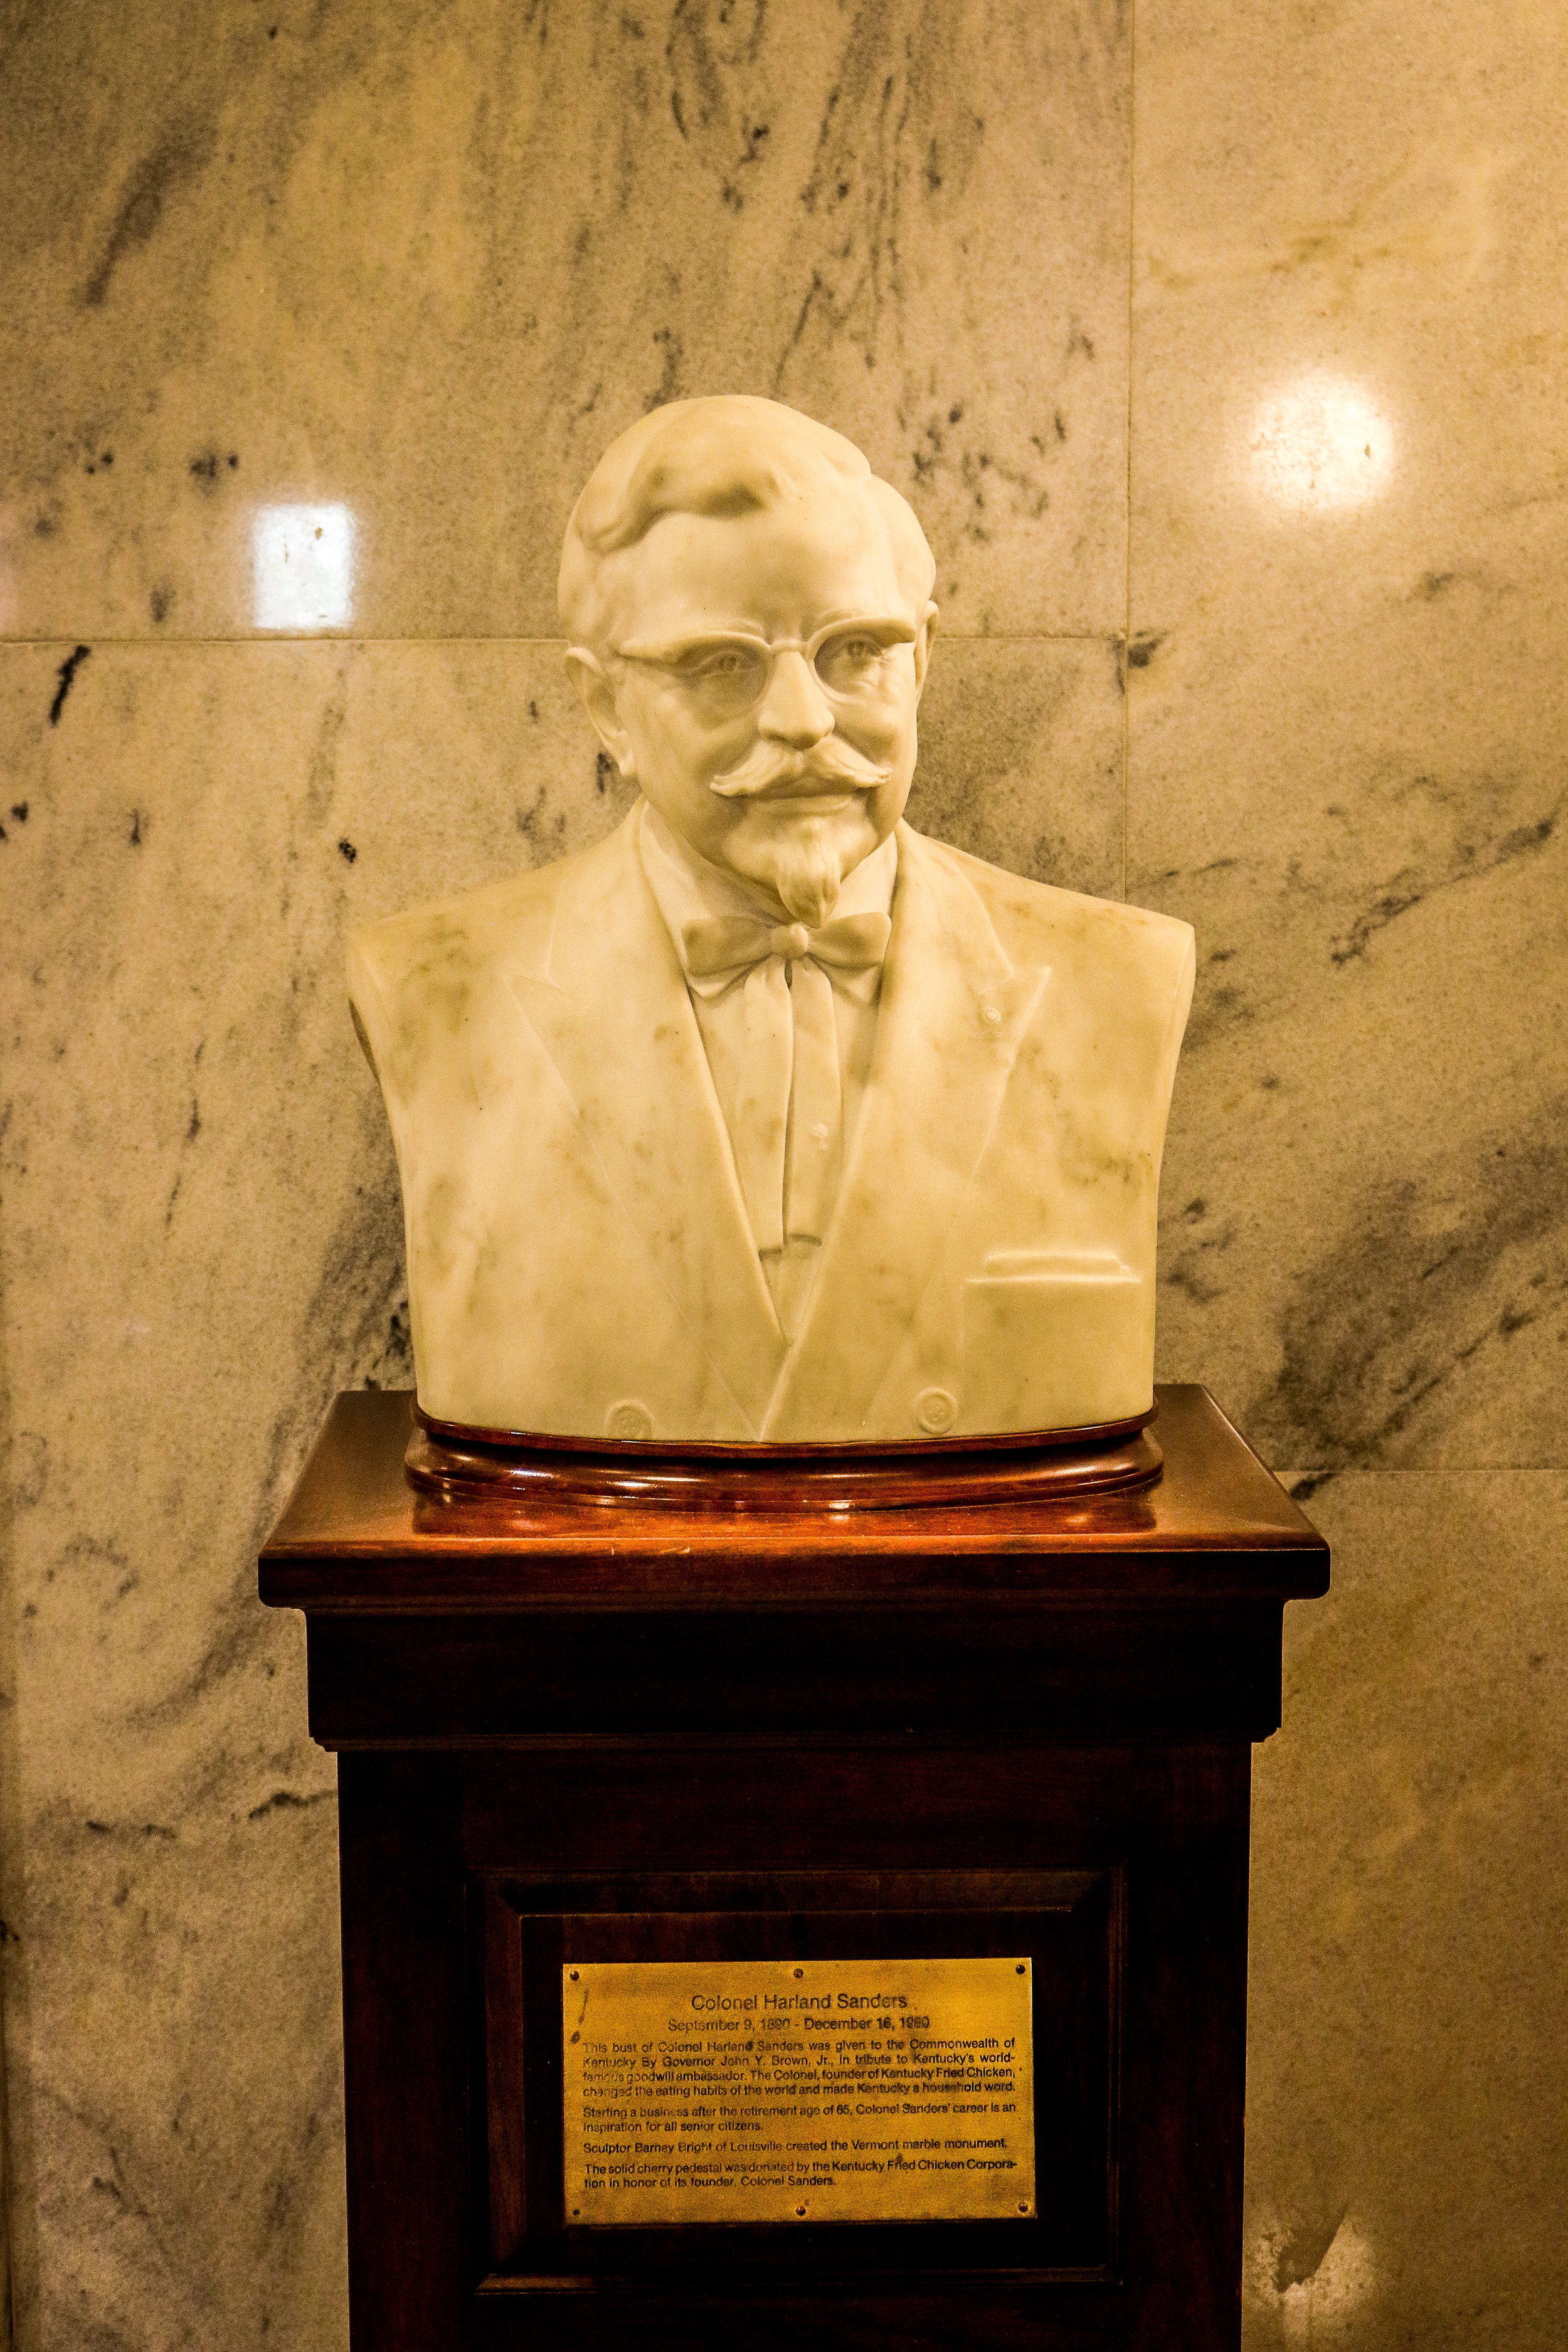 Col. Sanders in the State Capitol